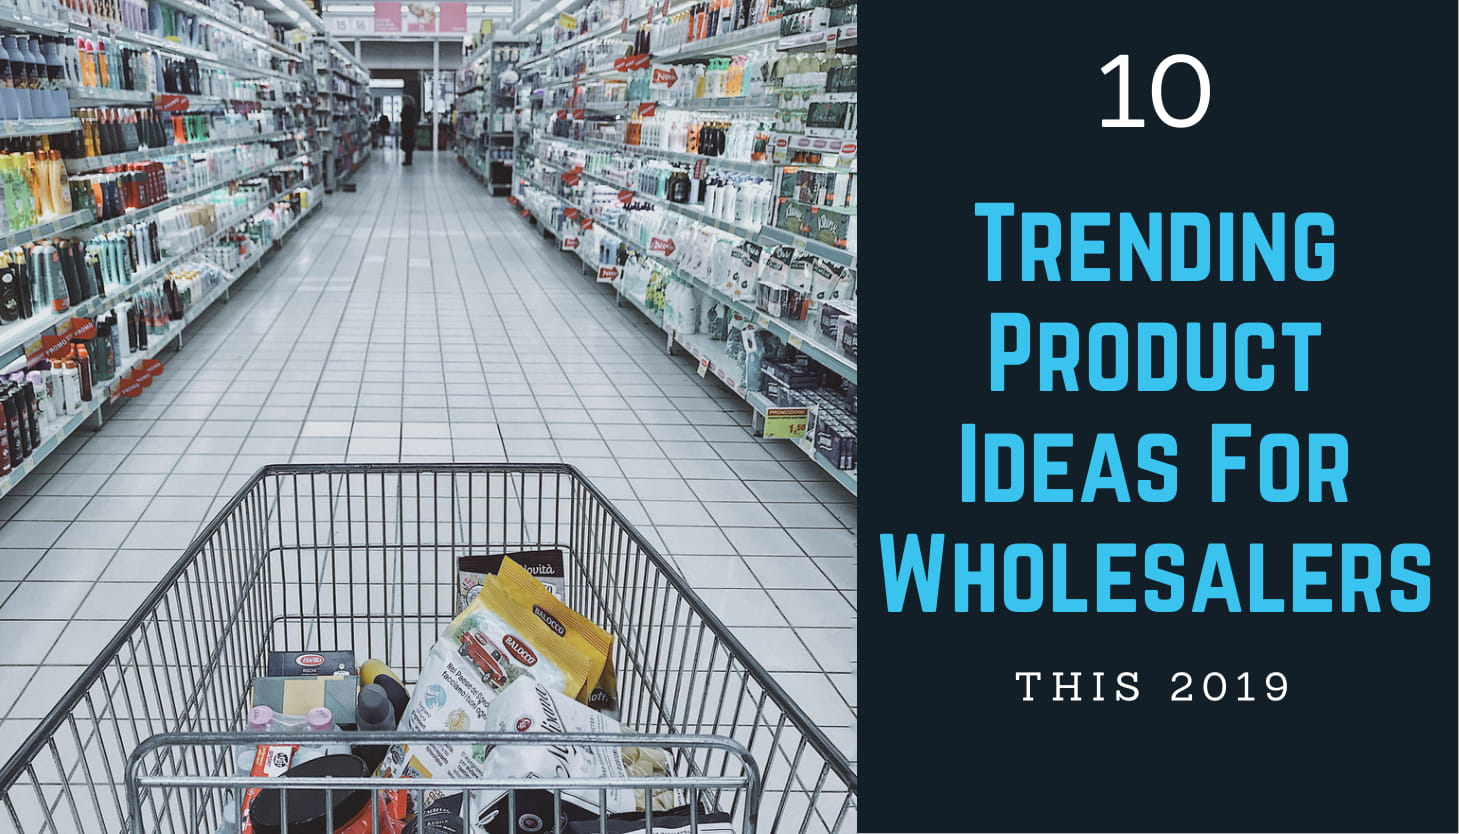 Trending Ideas for wholesalers